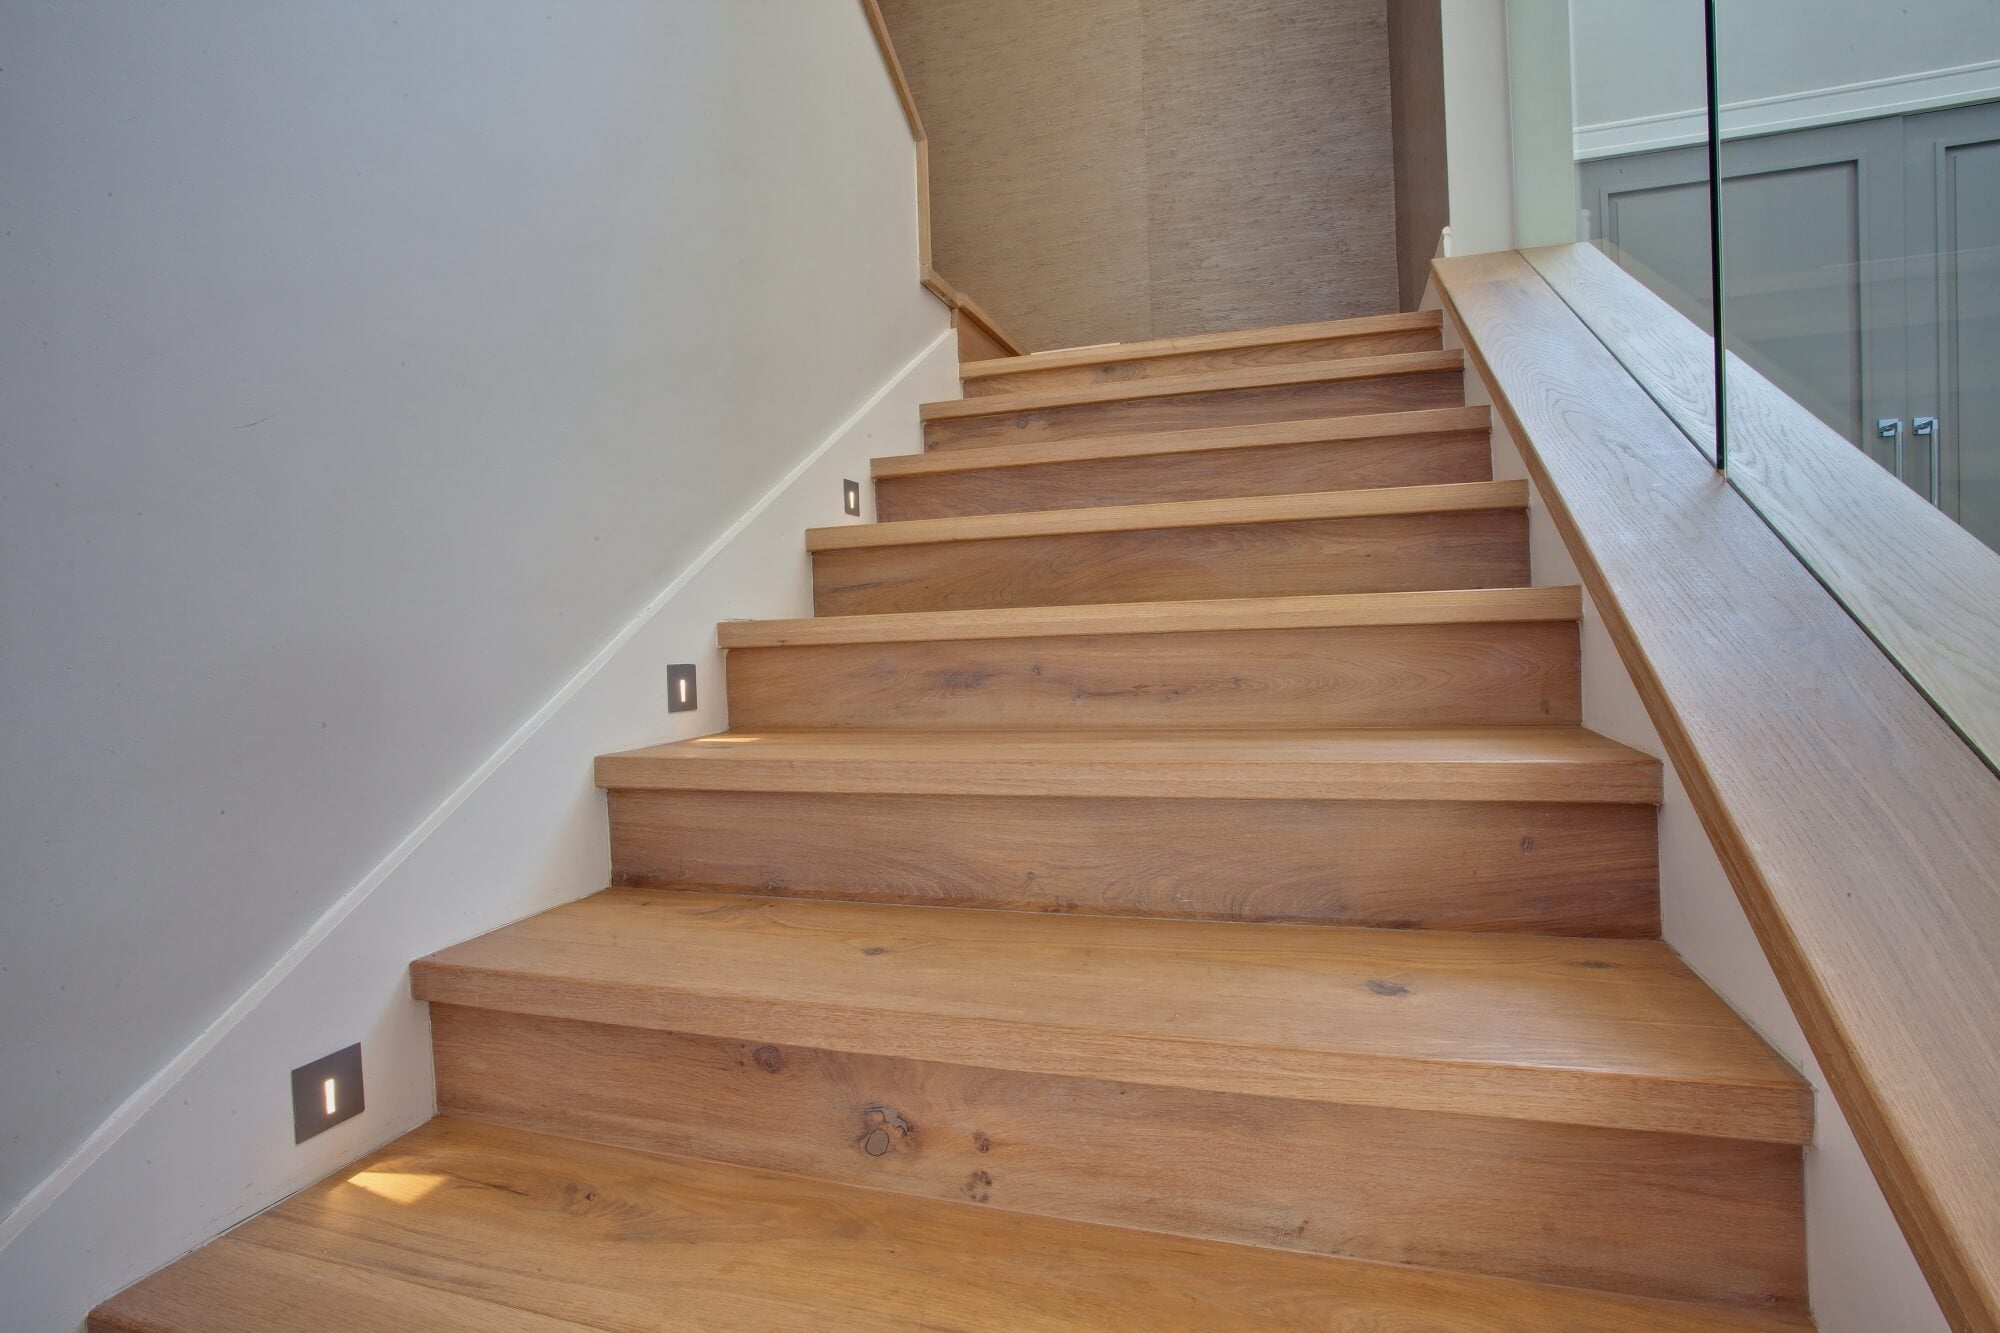 An oak staircase with hardwax oil wood finish.